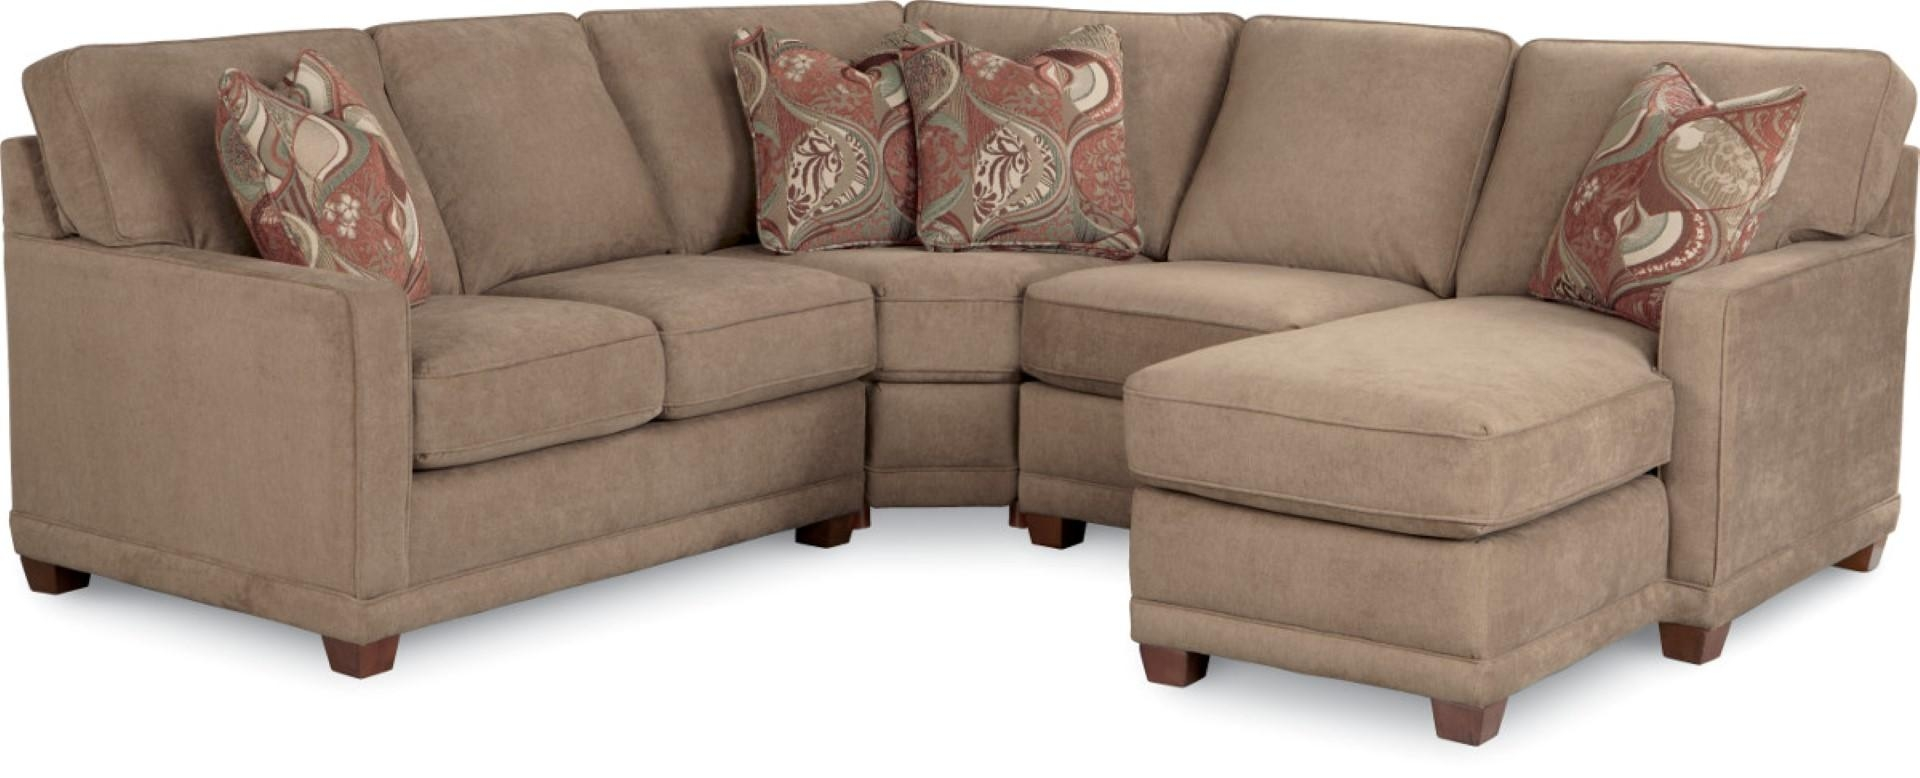 Furniture: Lazyboy Sectional With Cool Various Designs And Colors Within Lazy Boy Sectional (View 6 of 20)